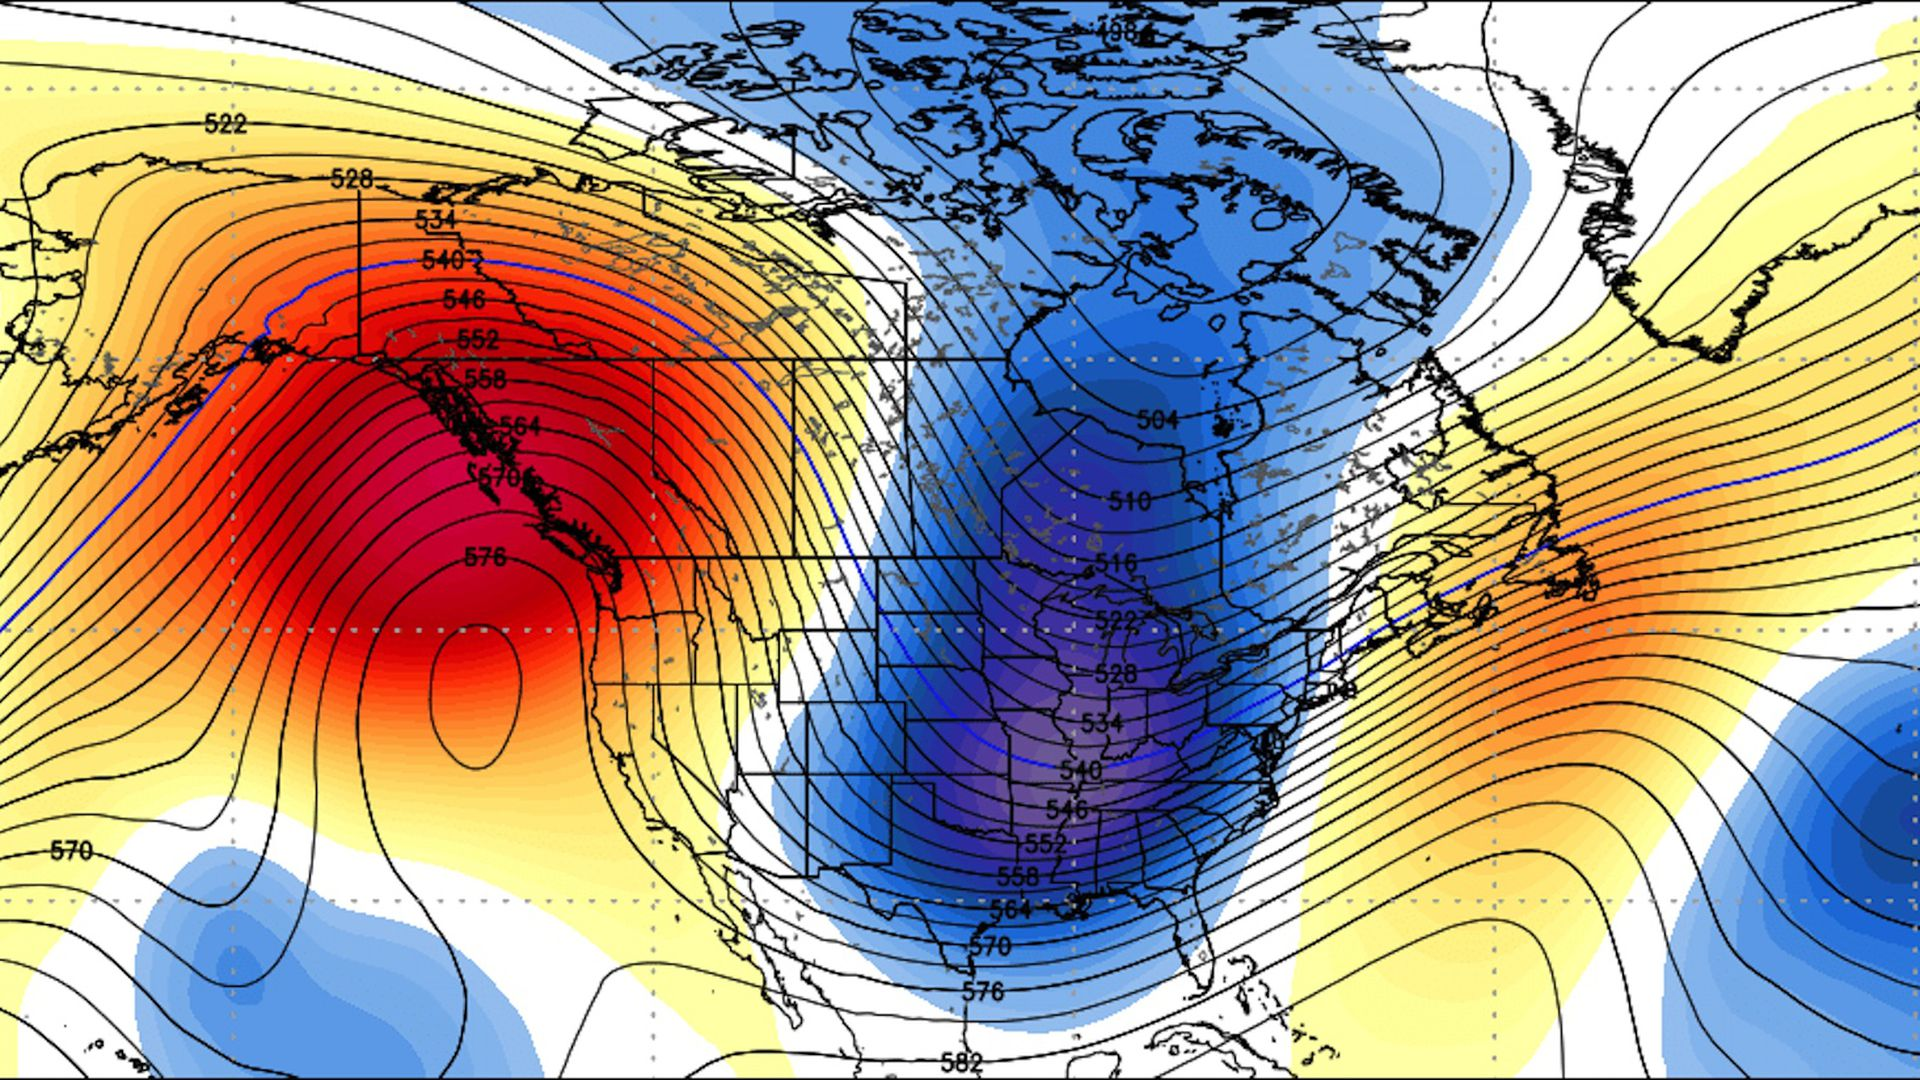 Computer model projection showing a deep trough over the Midwest and East Coast with much colder than average conditions in late January 2019.